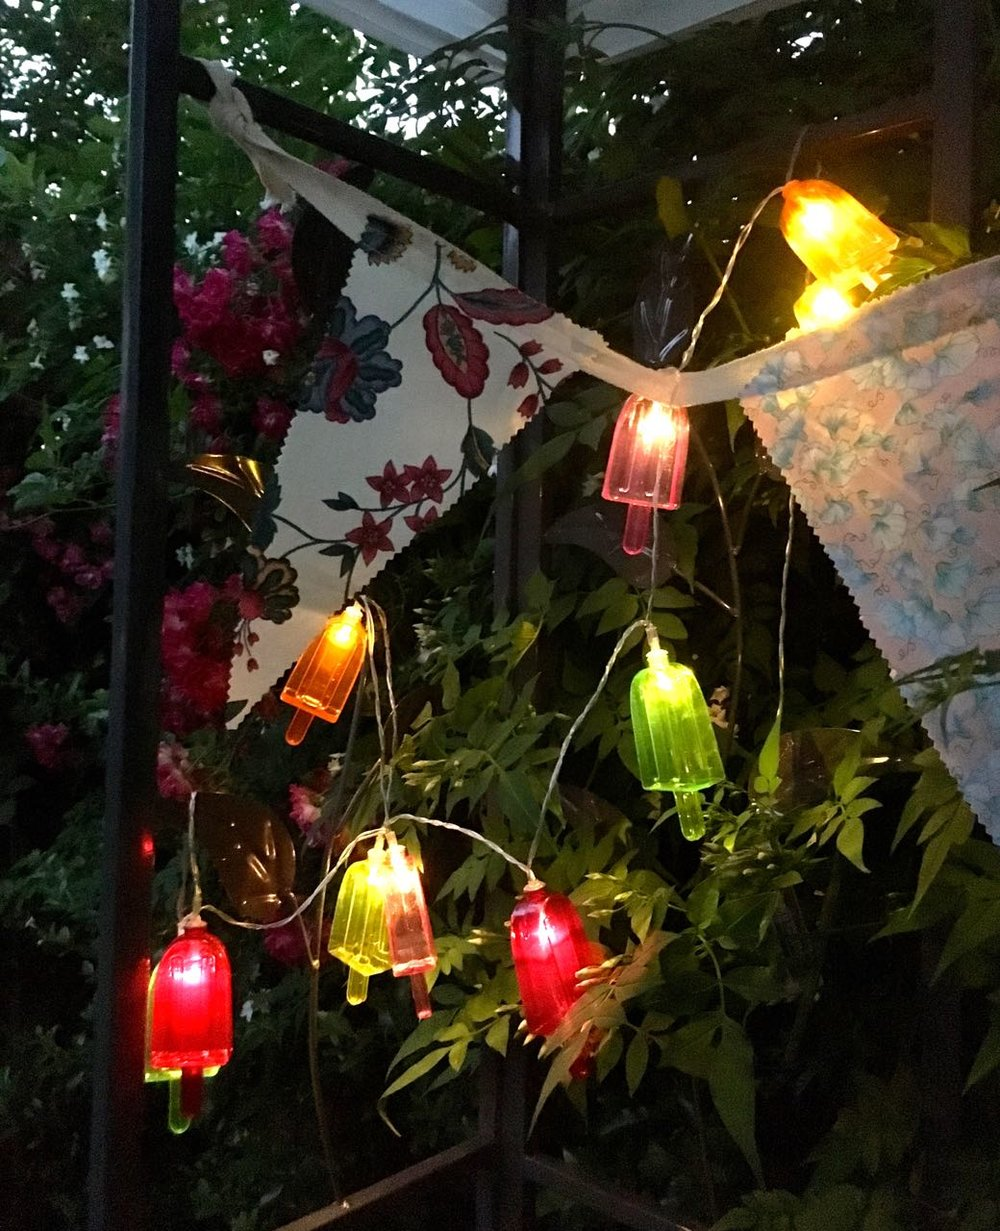 ice lolly lights on the gazebo